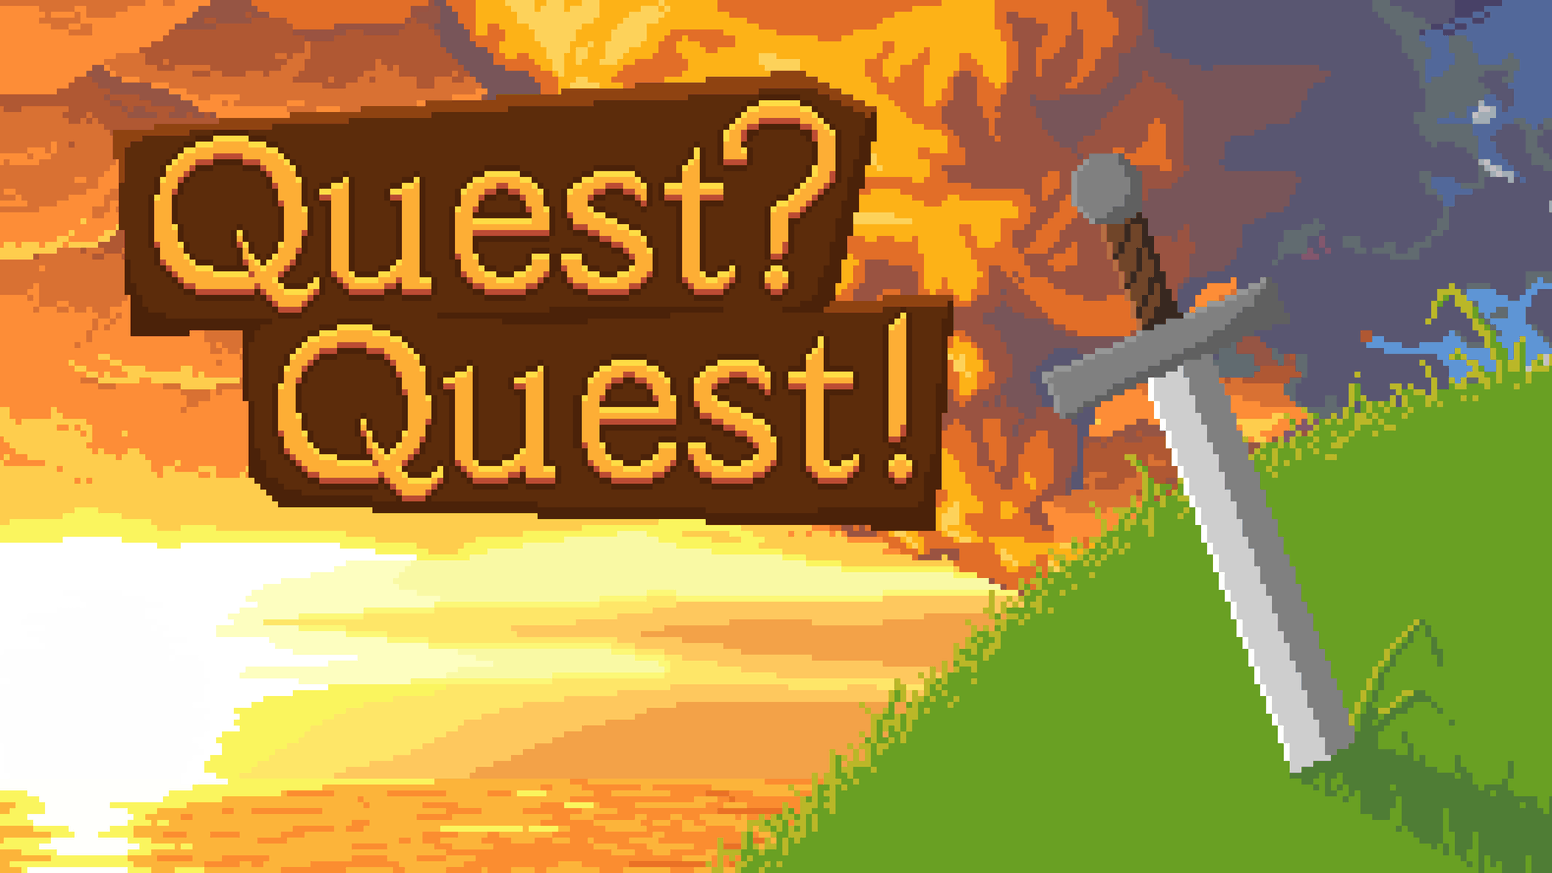 Quest?Quest! is a very original RPG